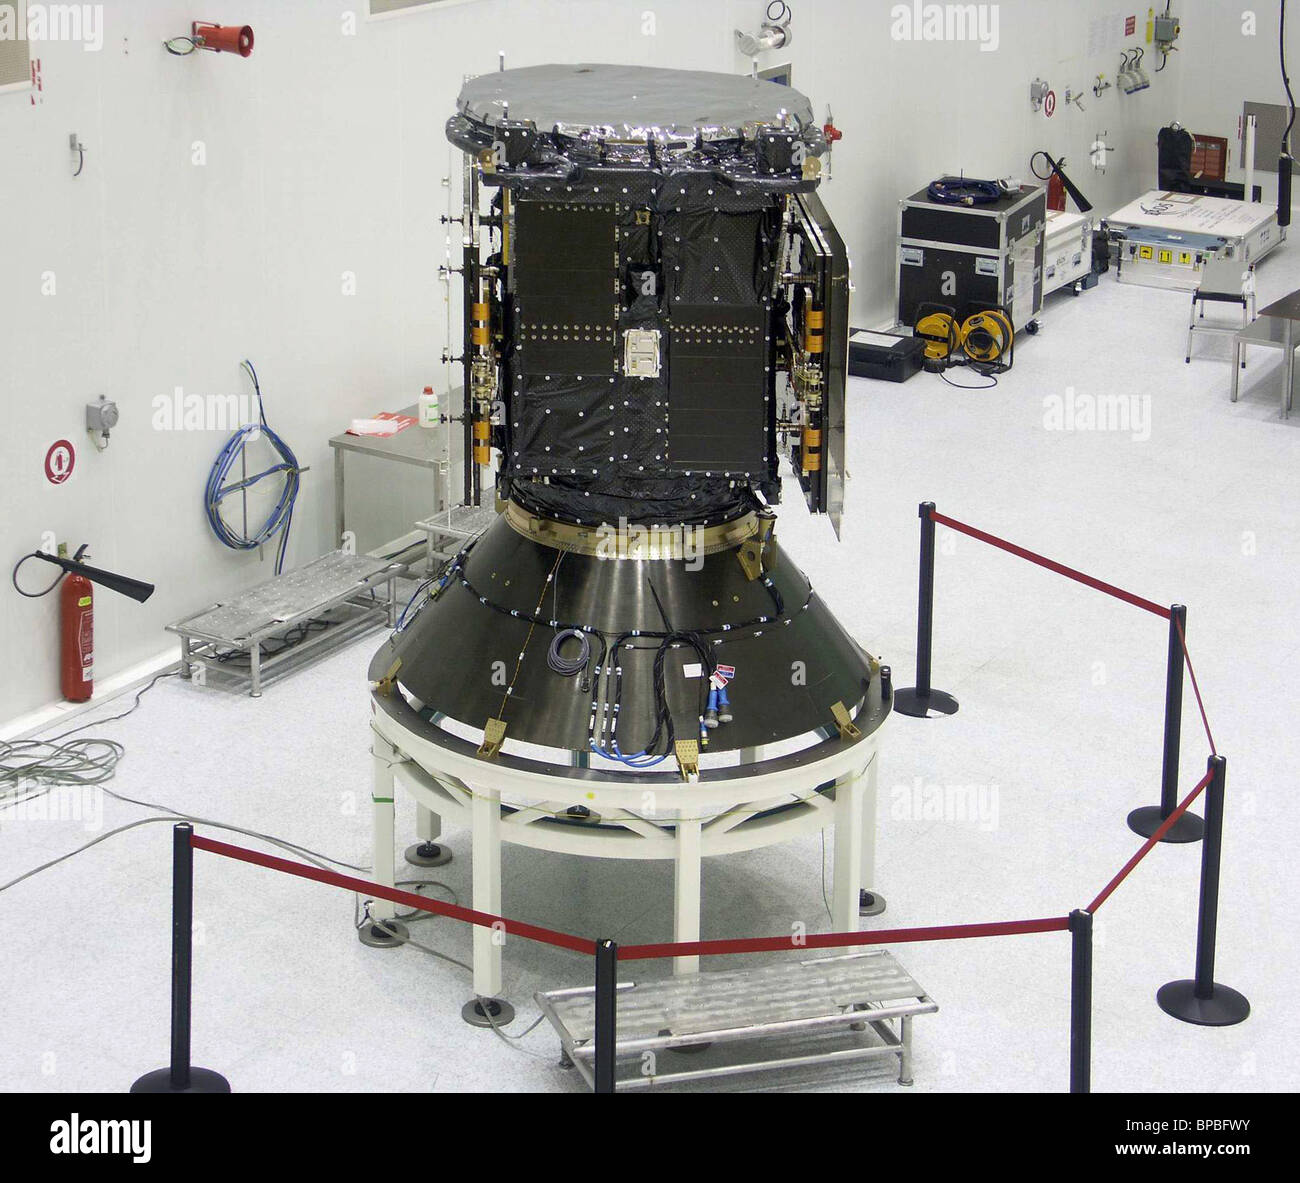 Galileo satellite launch delayed at customerїs request - Stock Image